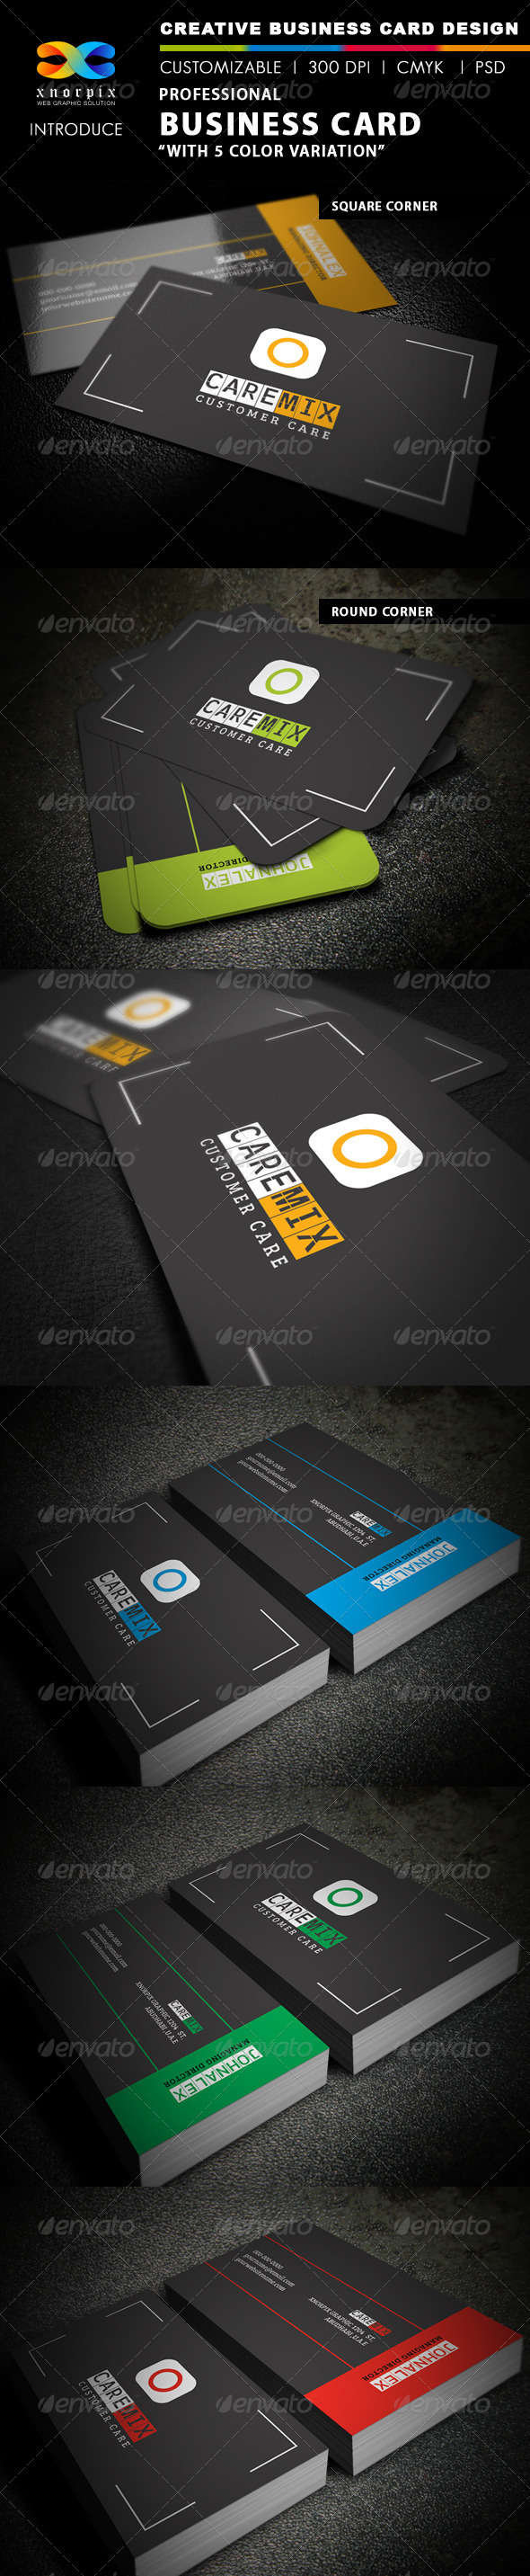 Customer Care Business Card - Creative Business Cards